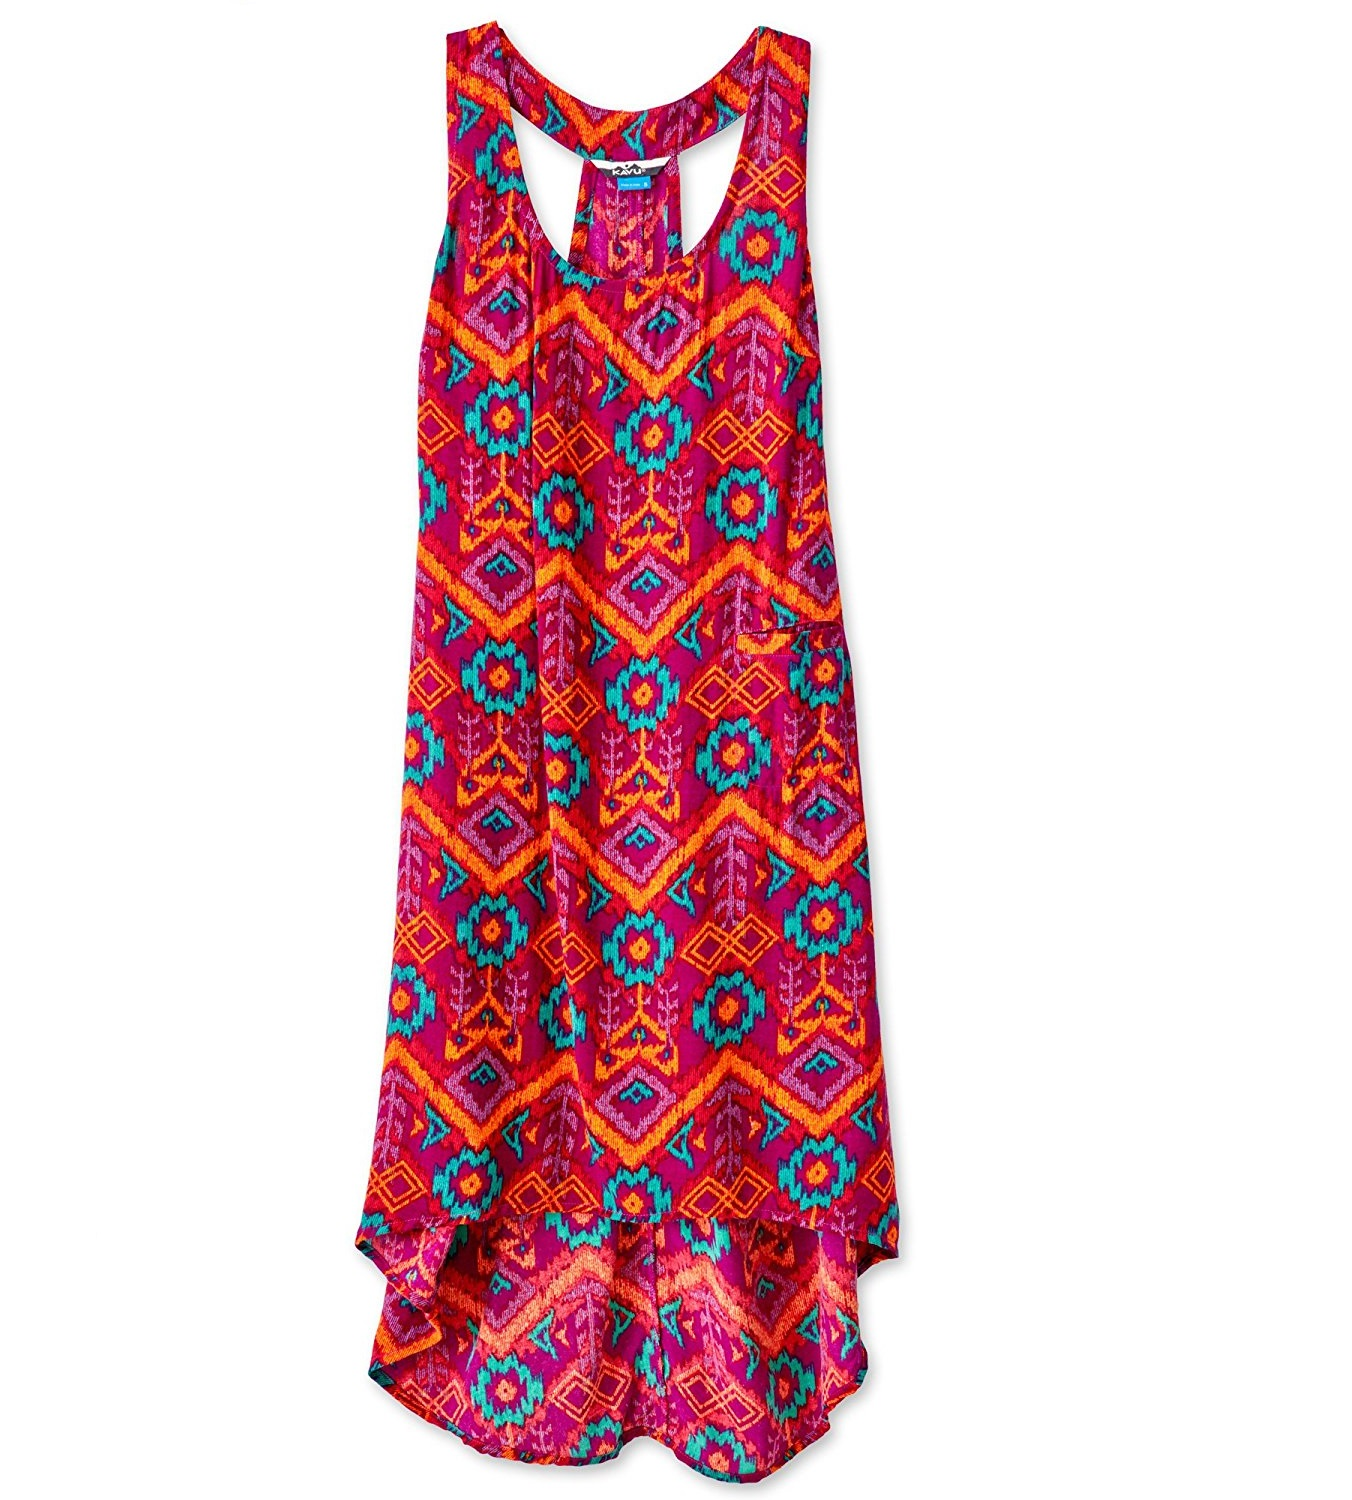 KAVU travel dress